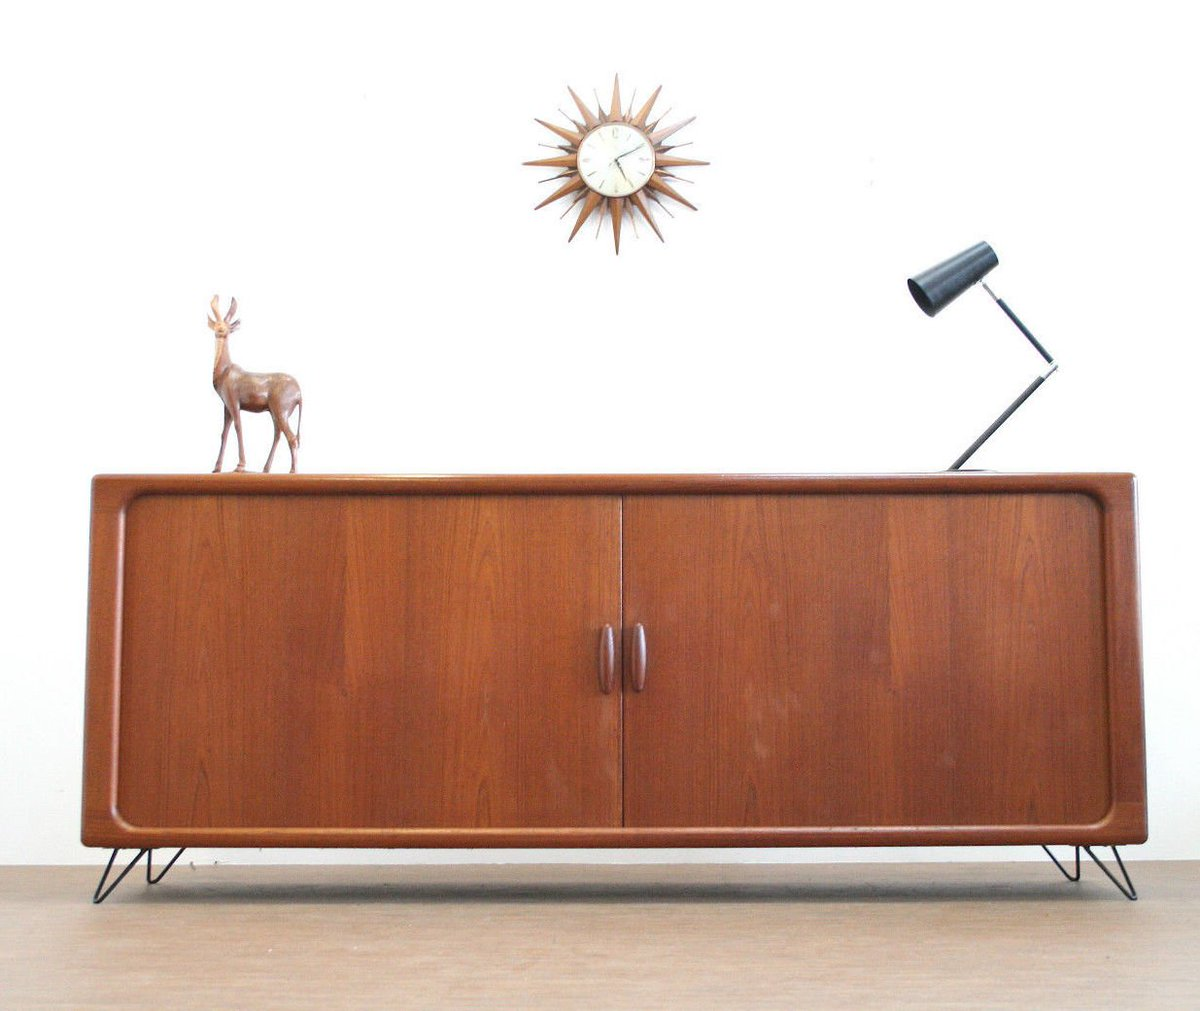 Vintage Sideboard Hairpin Legs The Mojo Reserve On Twitter